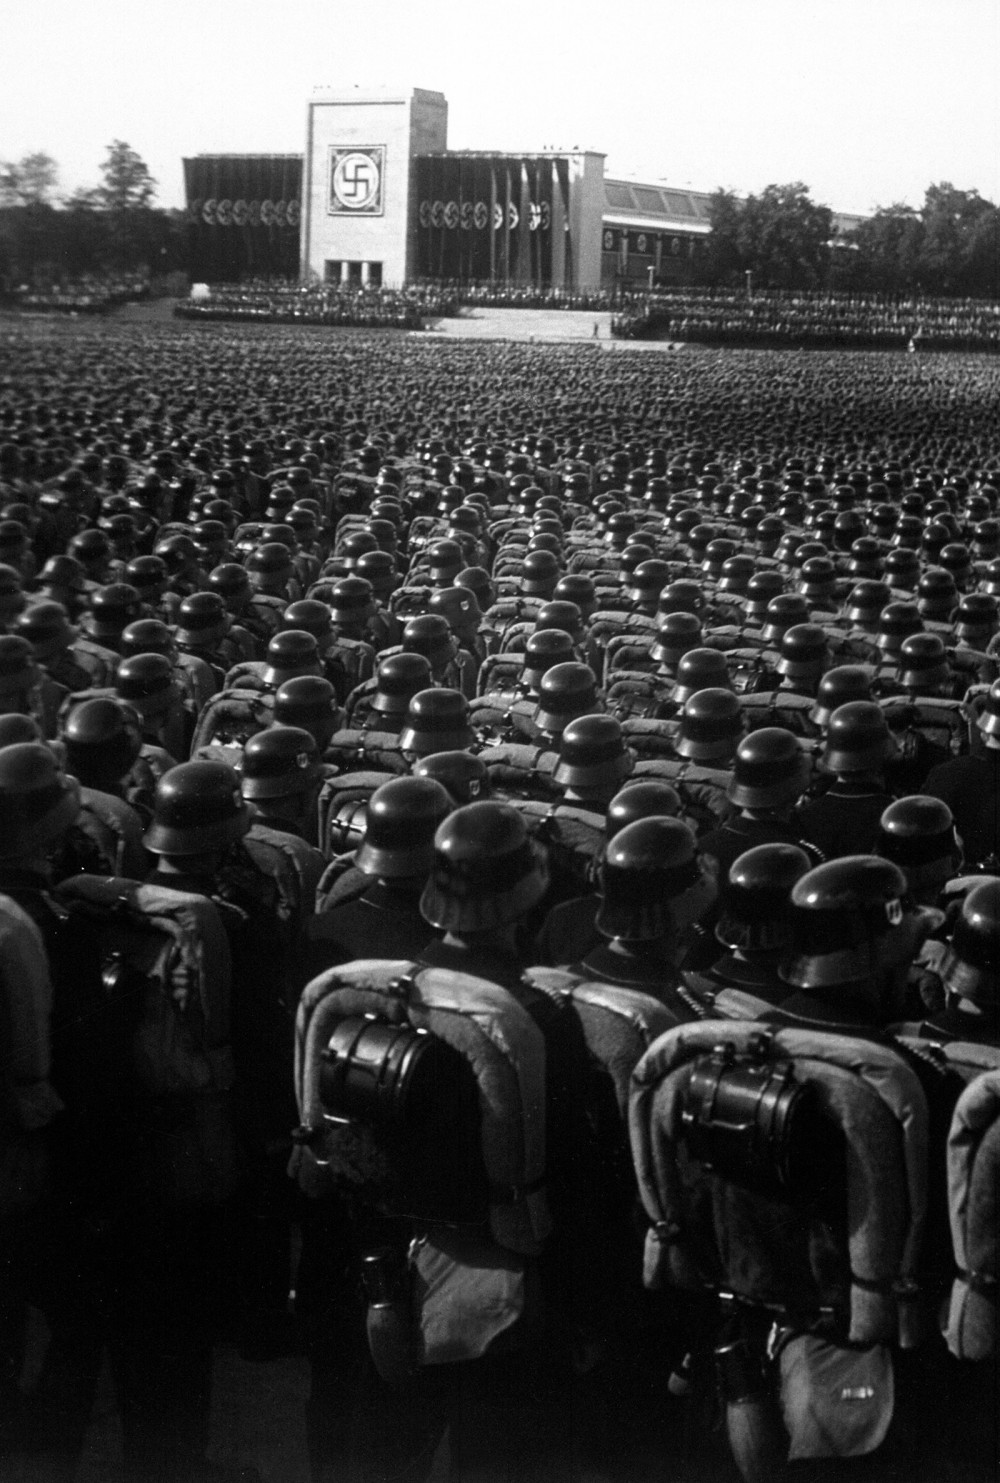 Huge rallies like this one in Nuremberg displayed the sheer number of armed and ready troop and instilled a fierce loyalty to (or fearful silence about) Hitler and the National Socialist Party in Germany. Photograph, November, 9. 1935. Wikimedia, http://commons.wikimedia.org/wiki/File:Reichsparteitag_1935.jpg.